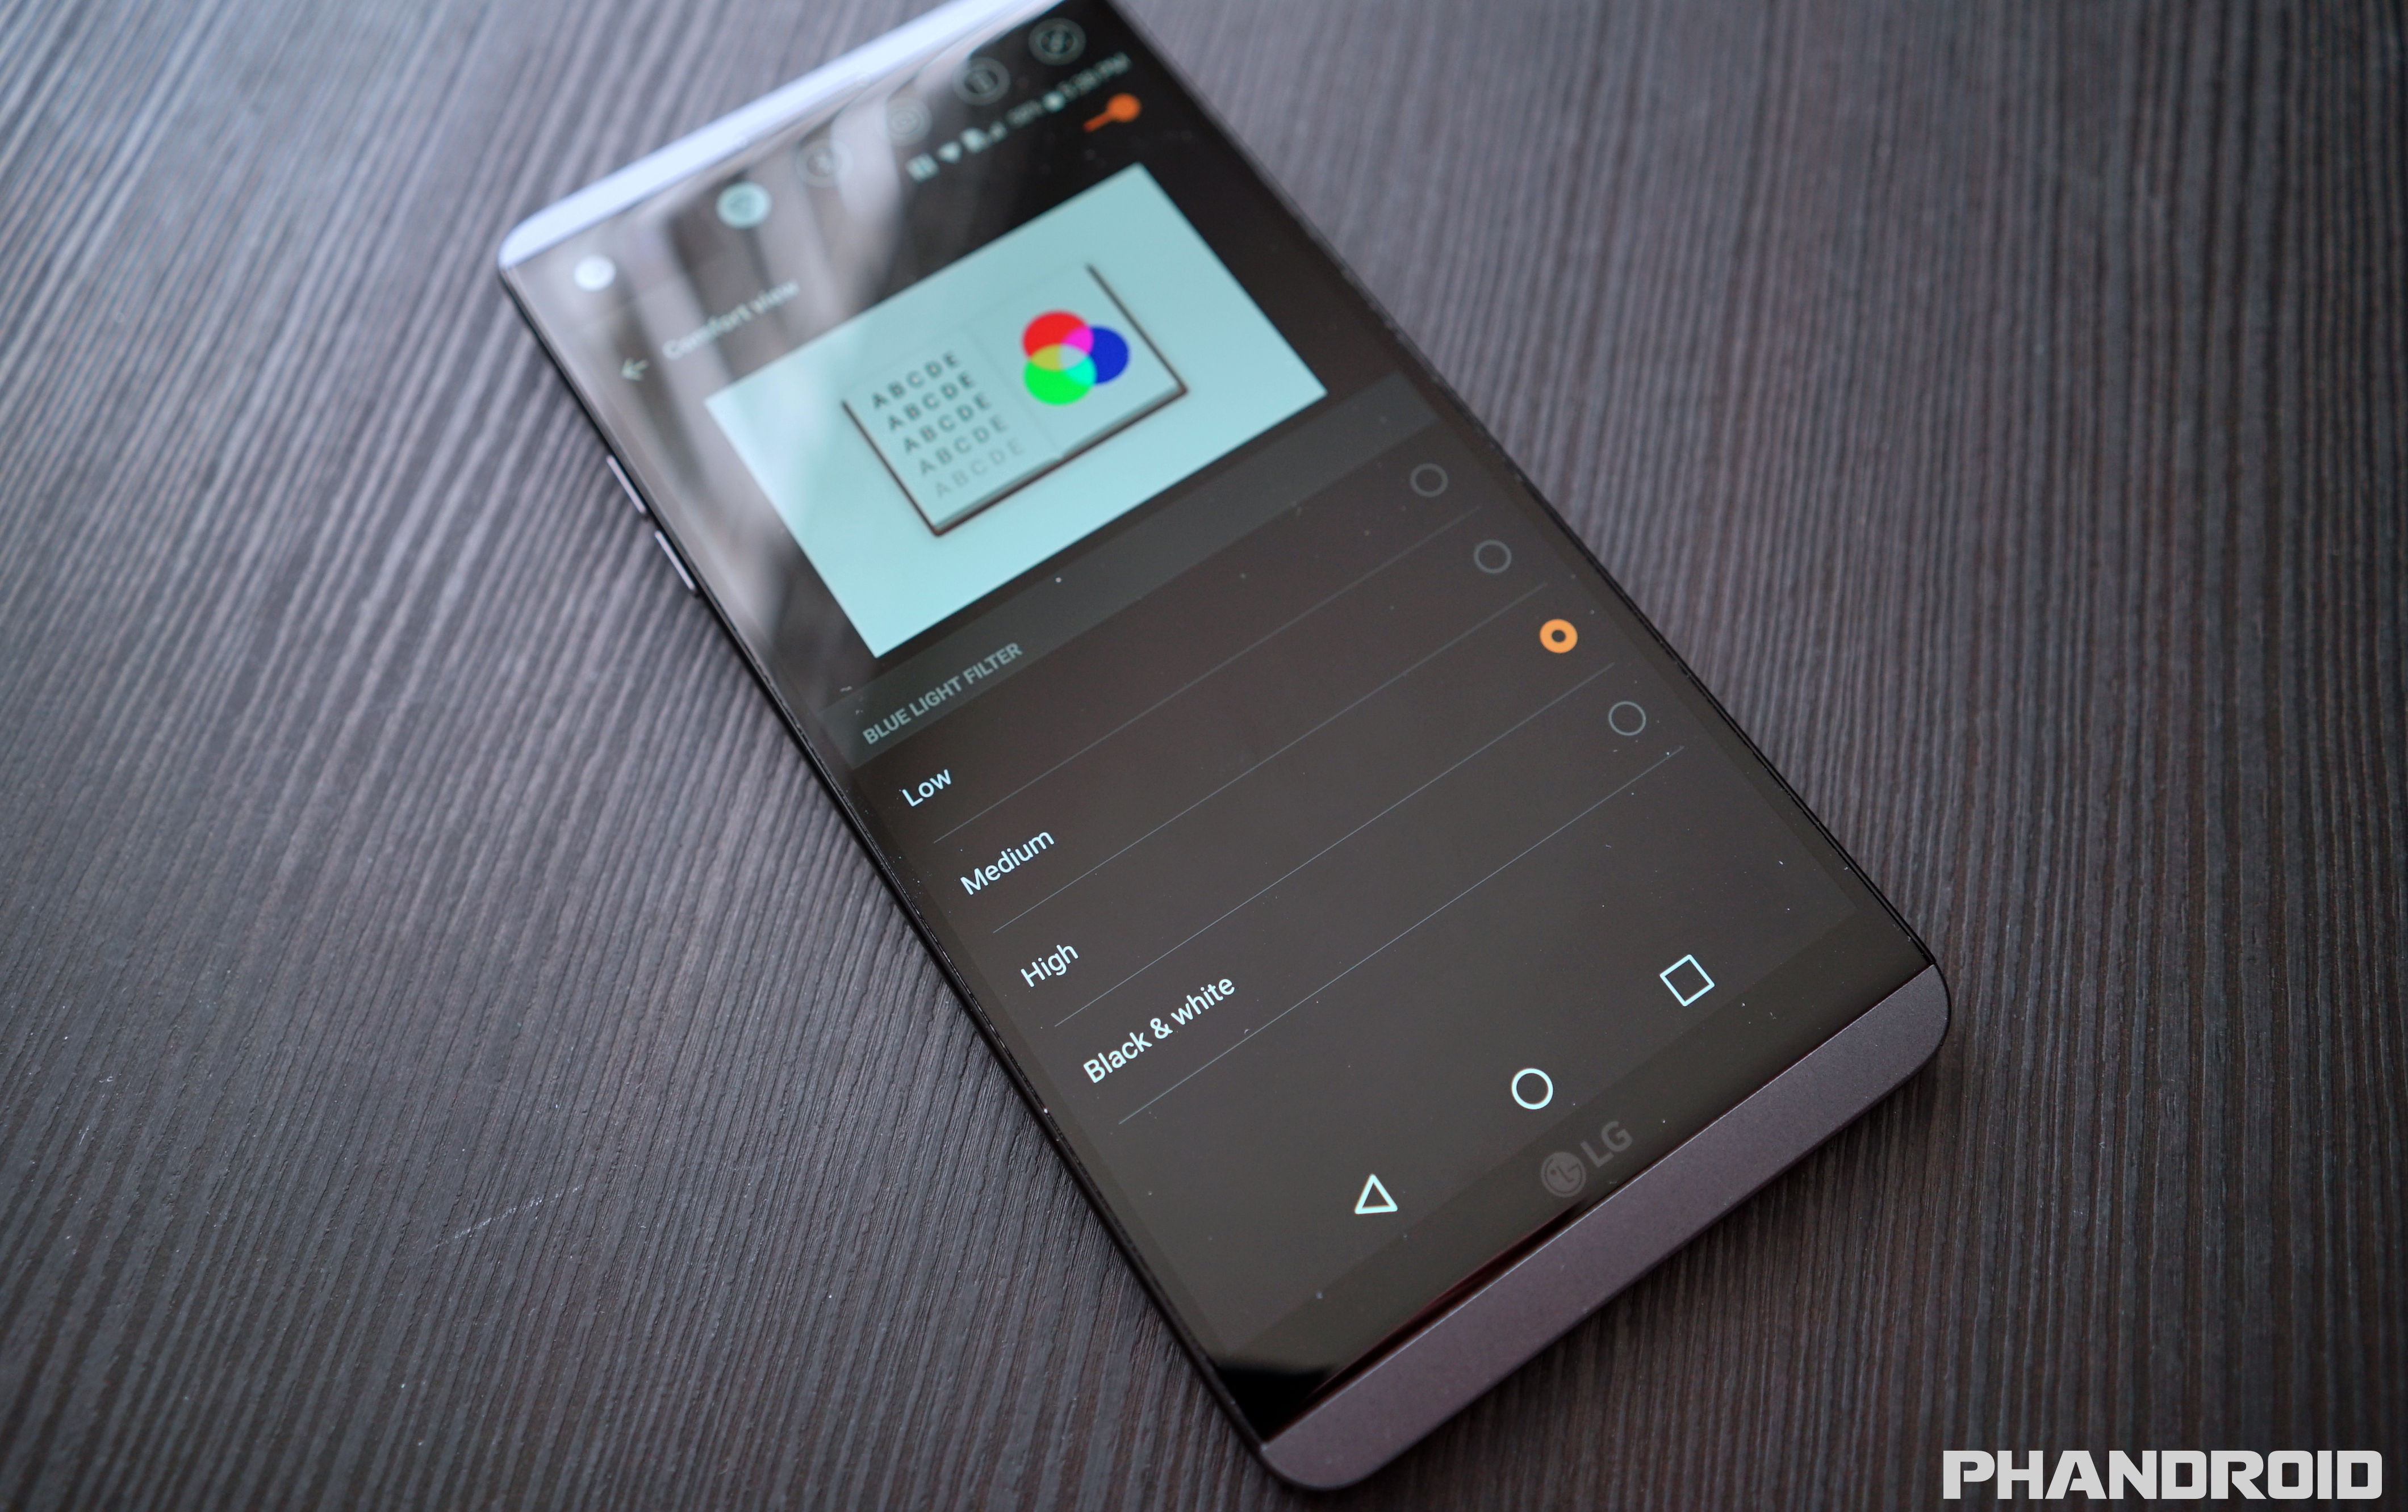 LG V20: 30+ Tips & Tricks